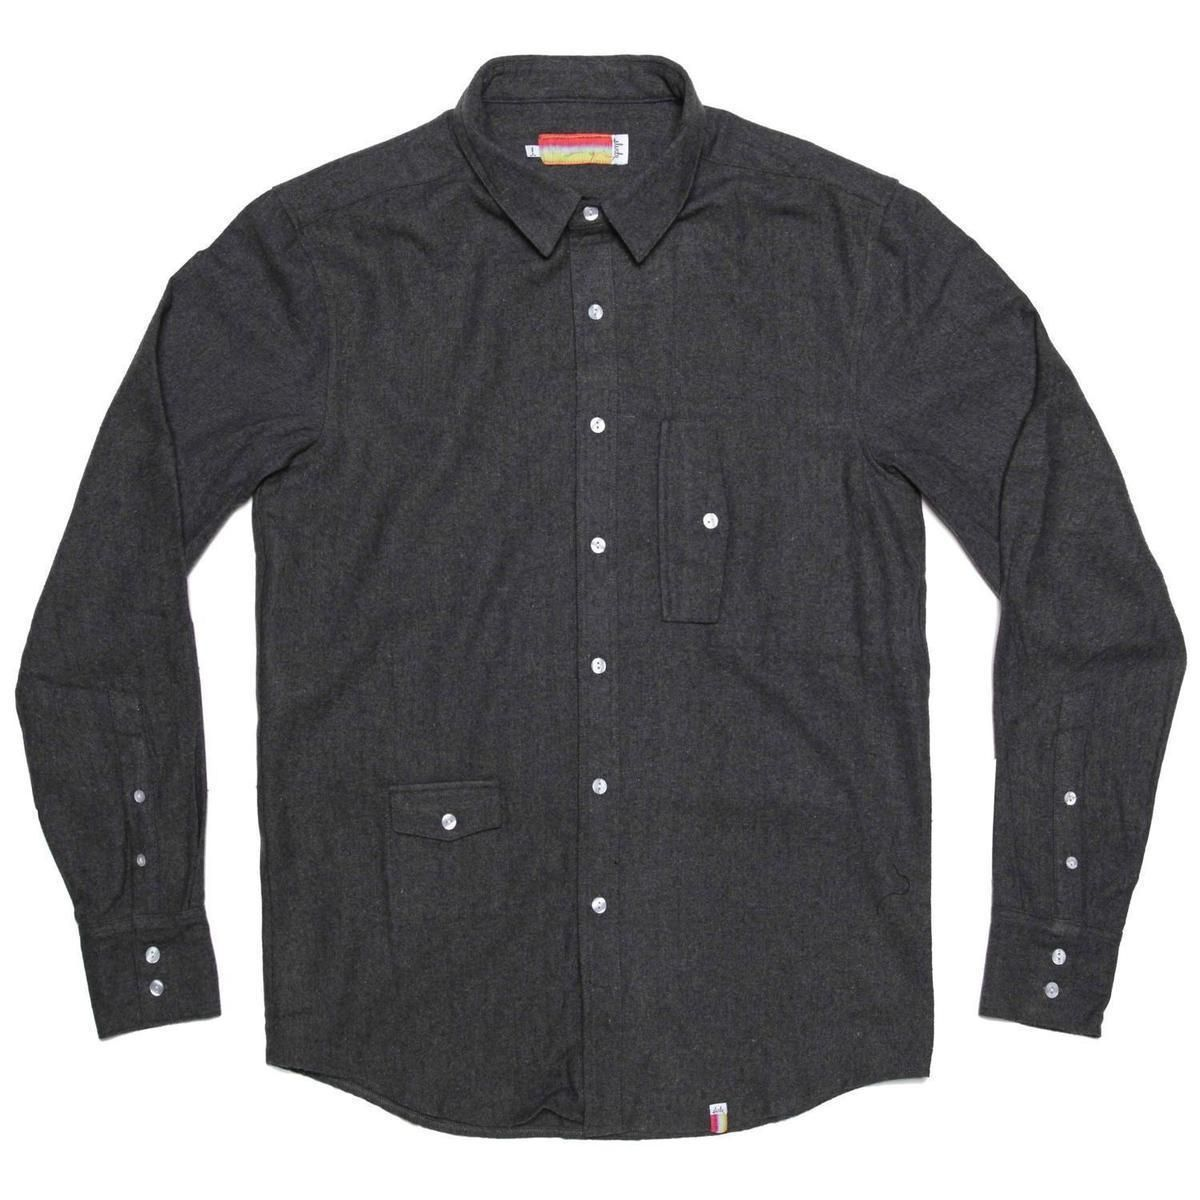 <p>Sometimes it can be hard to find men's shirts that fit you correctly. Check out these easy tips for tailoring your shirt for the perfect fit.</p><div>The method taught in this tutorial is called the 'pinch and pin.' Starting with the sleeves, you will pinch the fabric of the shirt until it's nice and tight around your arm, but you still have full range of motion. You will then pin it from the cuffs to the arm pit area.</div><div>